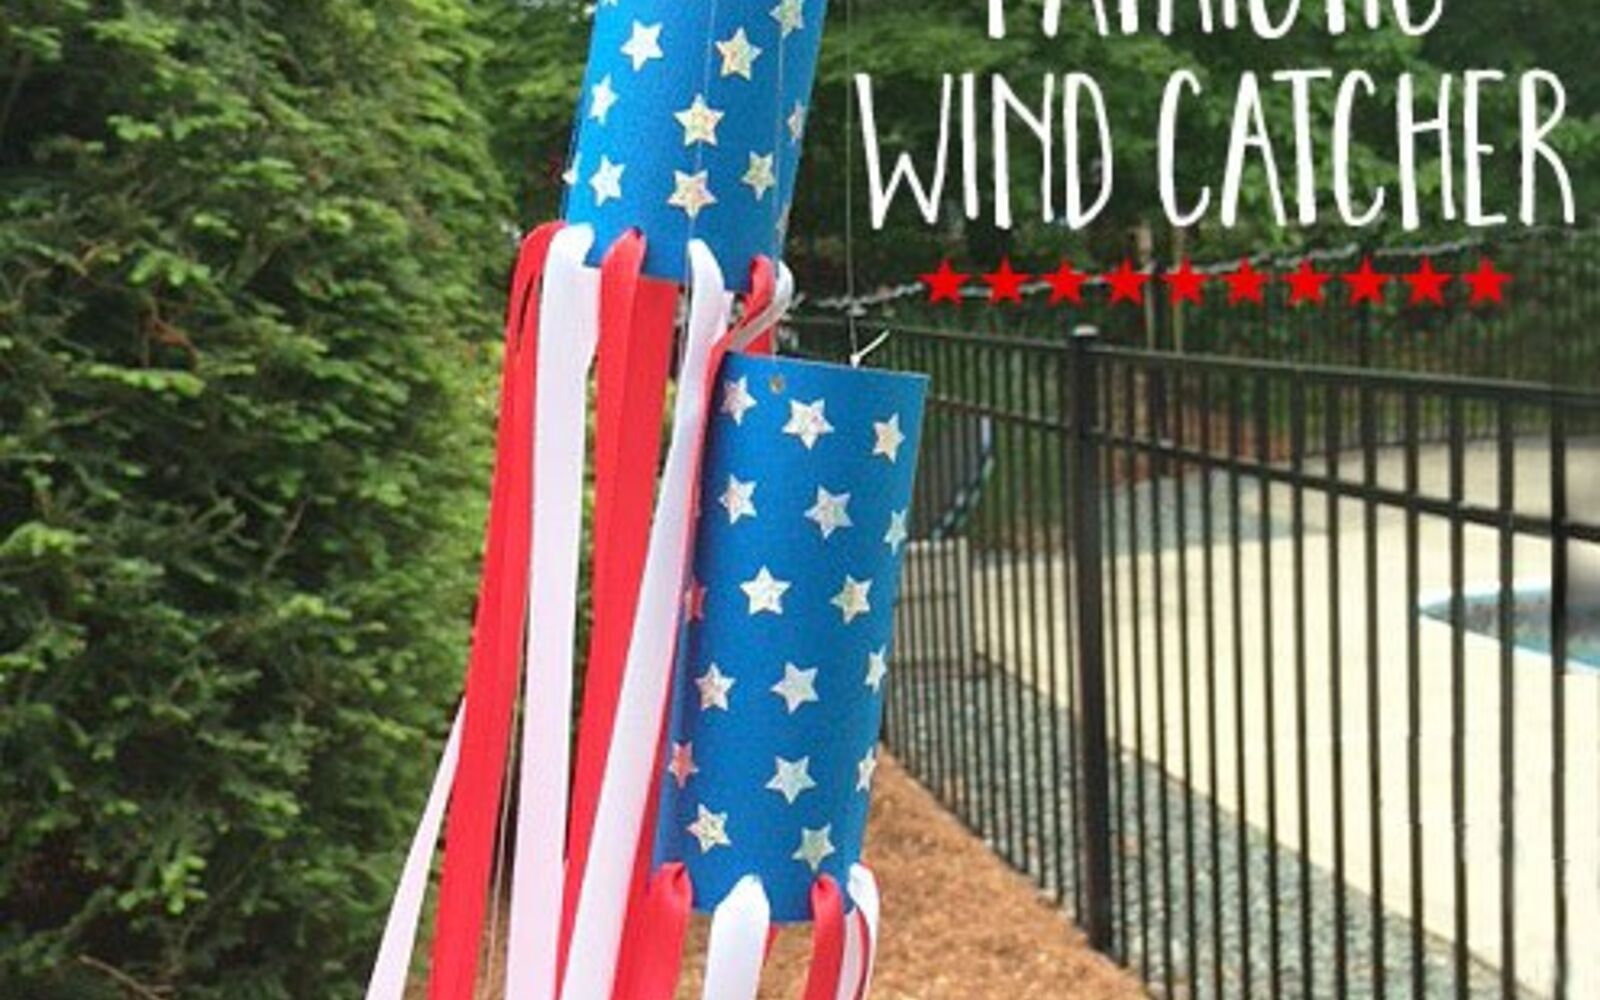 s 30 adorable diy ideas for july 4th, Or an adorable wind catcher